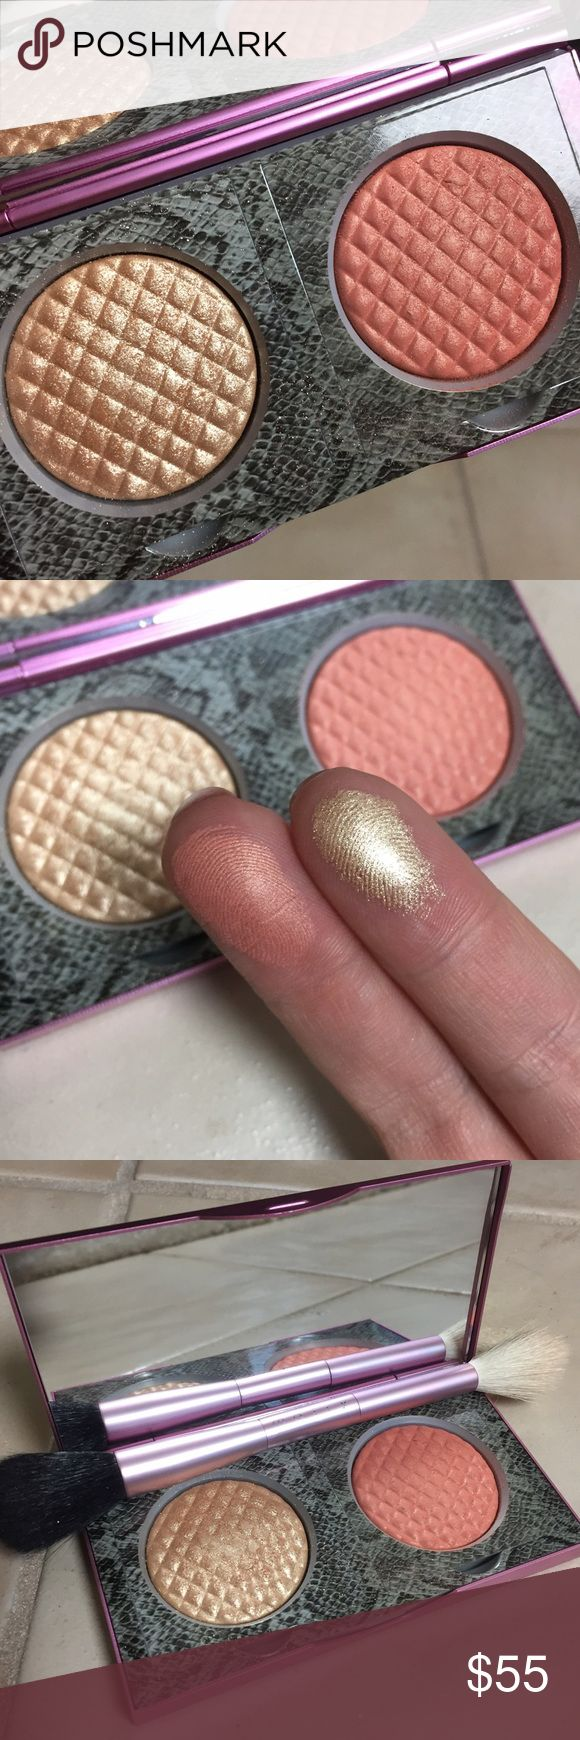 Mally effortless Airbrush Highlight/ Blush duo Sold out everywhere, discontinued and selling for $150 on eBay! Craziness. I have used this just a few times and swatched for posh to show how beautiful these are! The highlight is similar to MAC whisper of Gilt, or Laura Geller Gilded Honey. Recommended by Jaclyn Hill and sold out ever since! Mally Makeup Luminizer